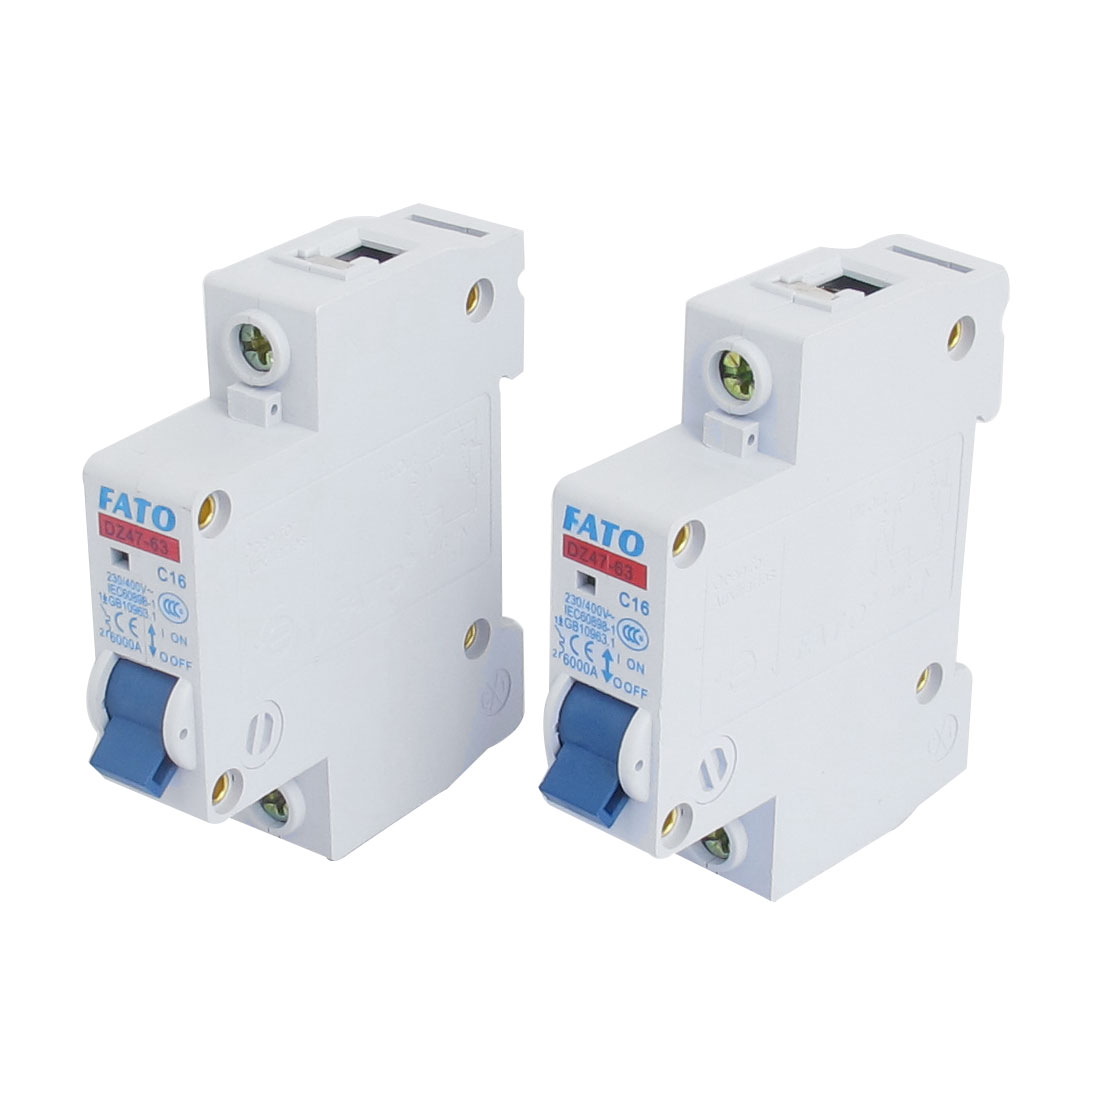 2 Pcs 6000A Breaking Capacity 1 Pole 35mm DIN Rail Mounted Miniature Circuit Breakers AC 230/400V DZ47-63 C16